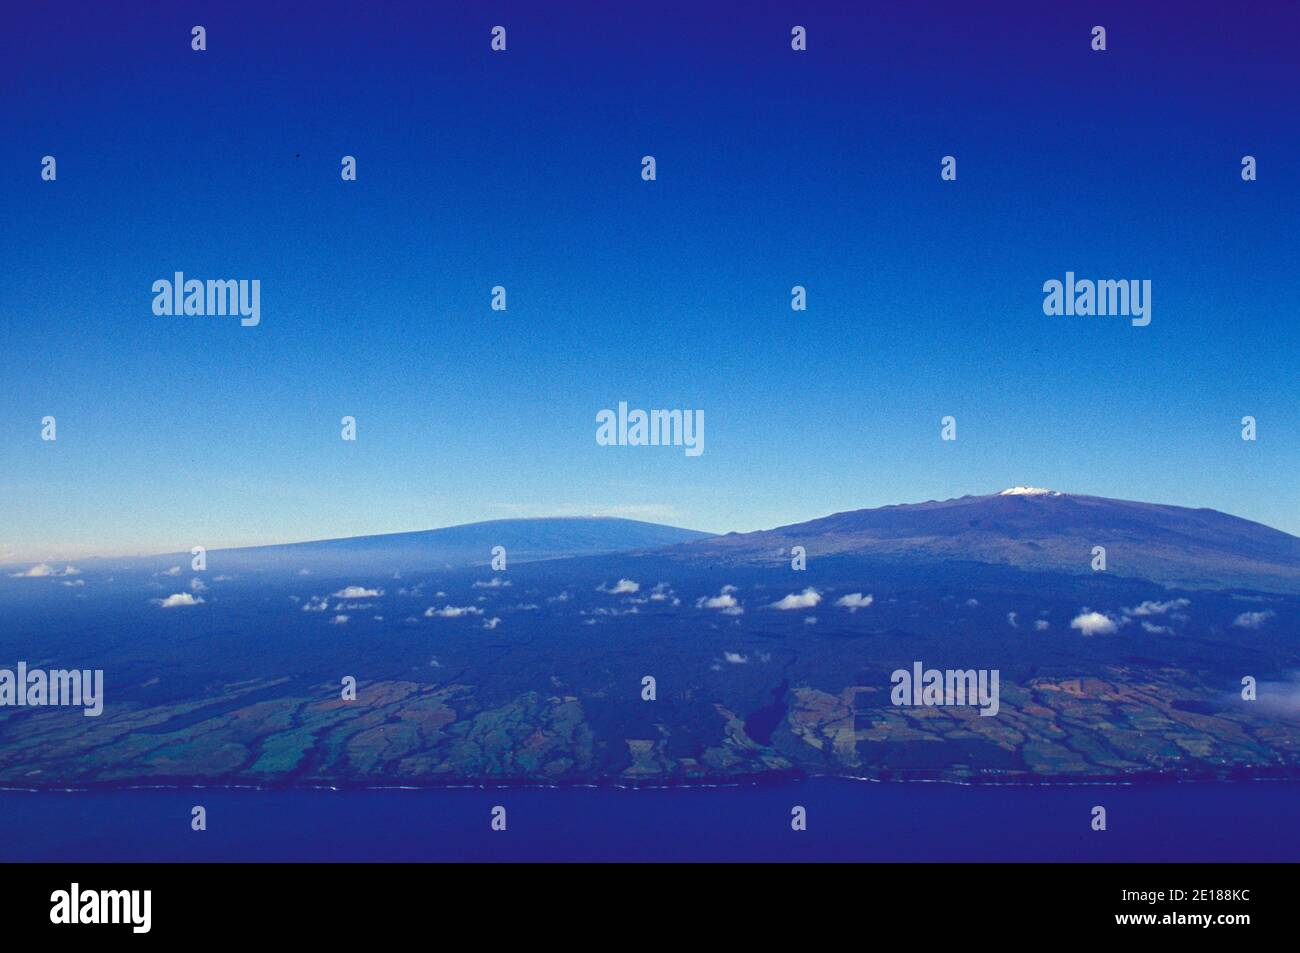 Aerial view of snow capped Mauna Kea with observatories, and Mauna Loa in background. Stock Photo